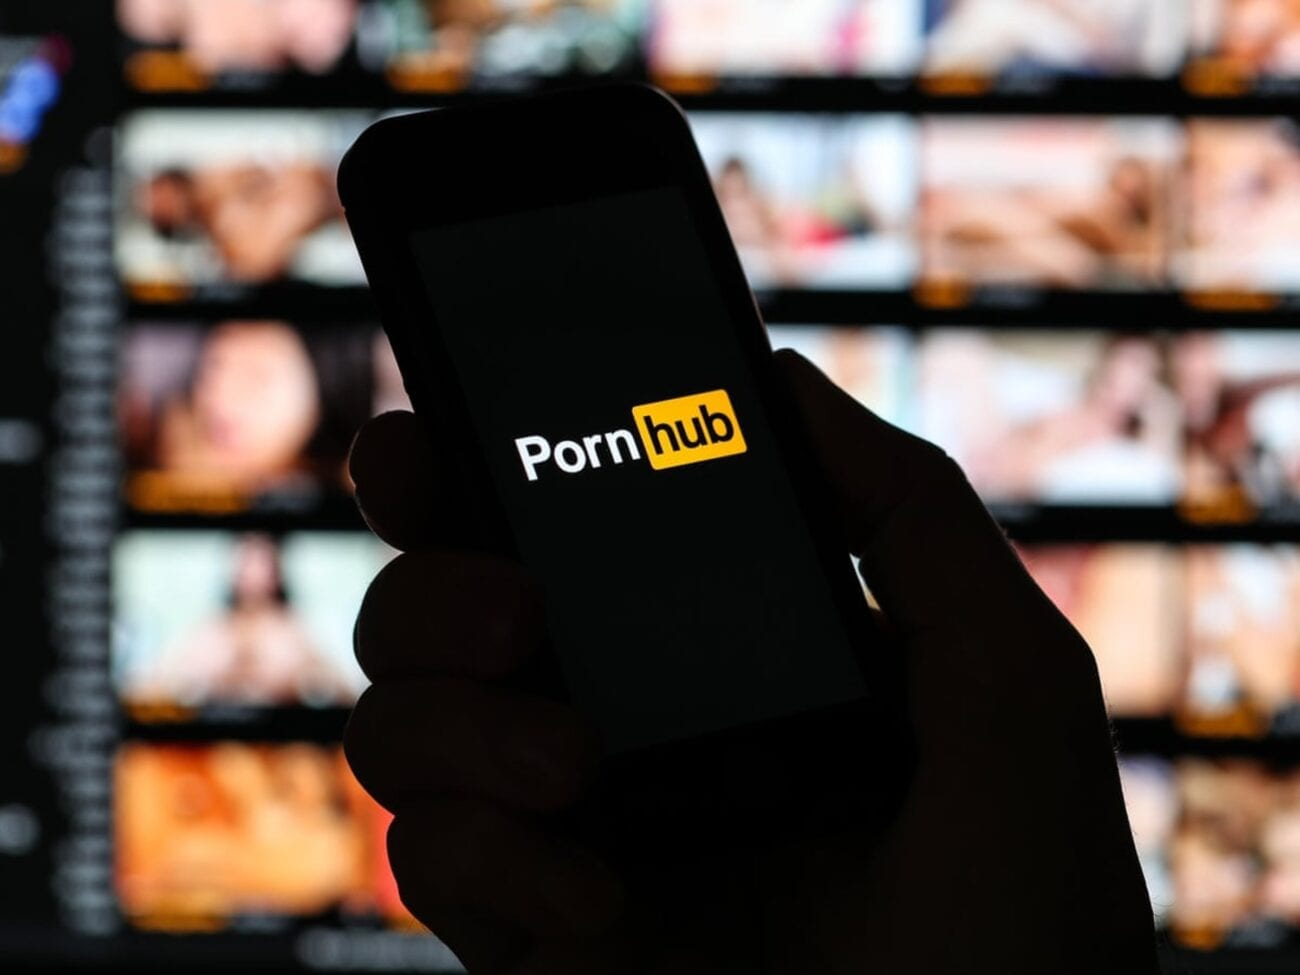 Pornhub.com has made some major changes implemented over the past couple of years. Will sex workers end up working for free? What's changed?